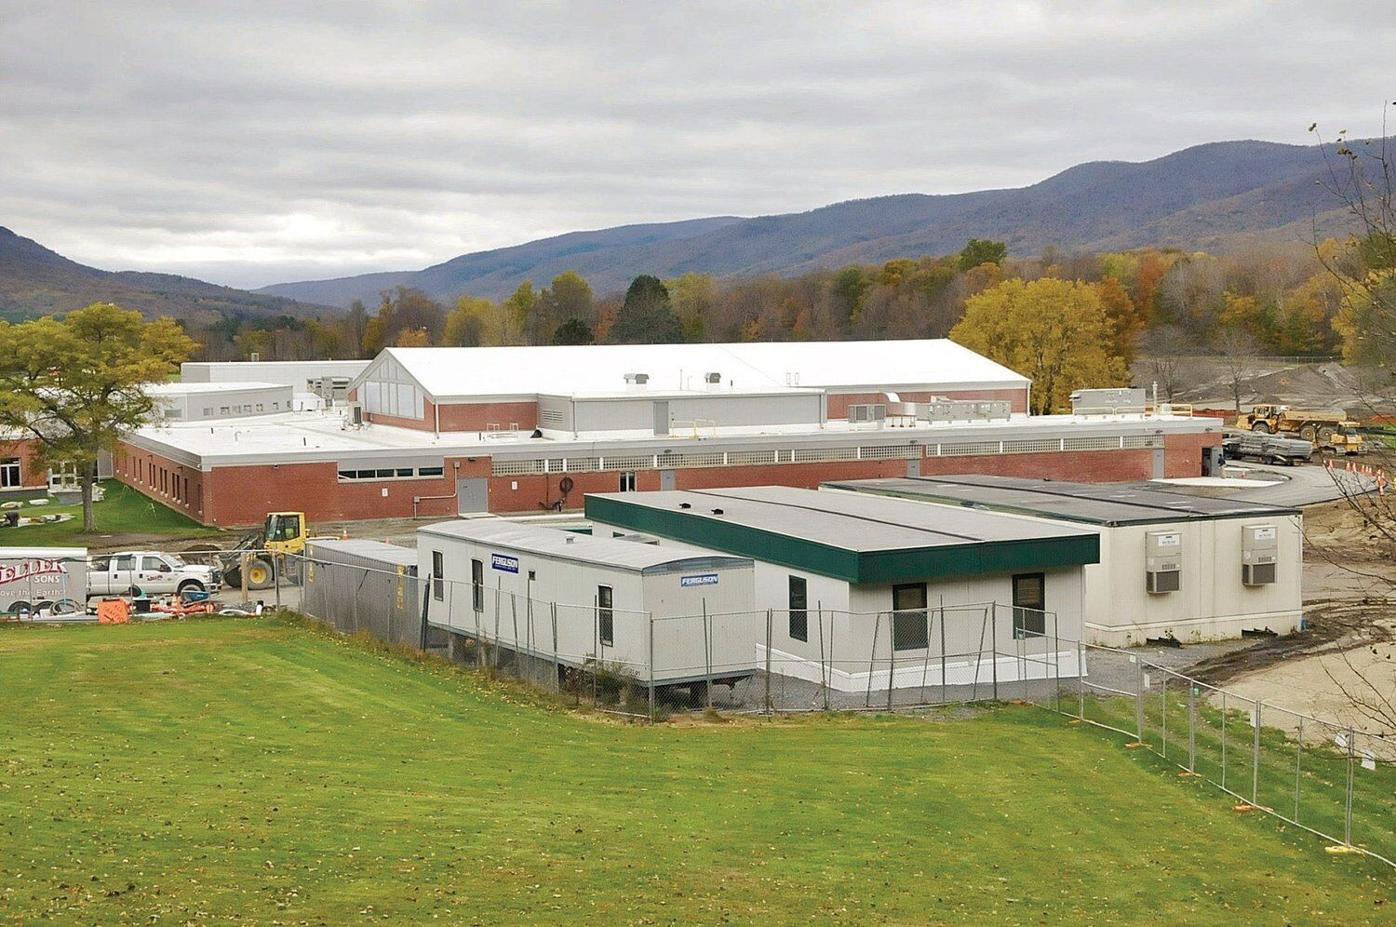 Sewer gas prompts closure of Mount Greylock Regional on Friday, Monday